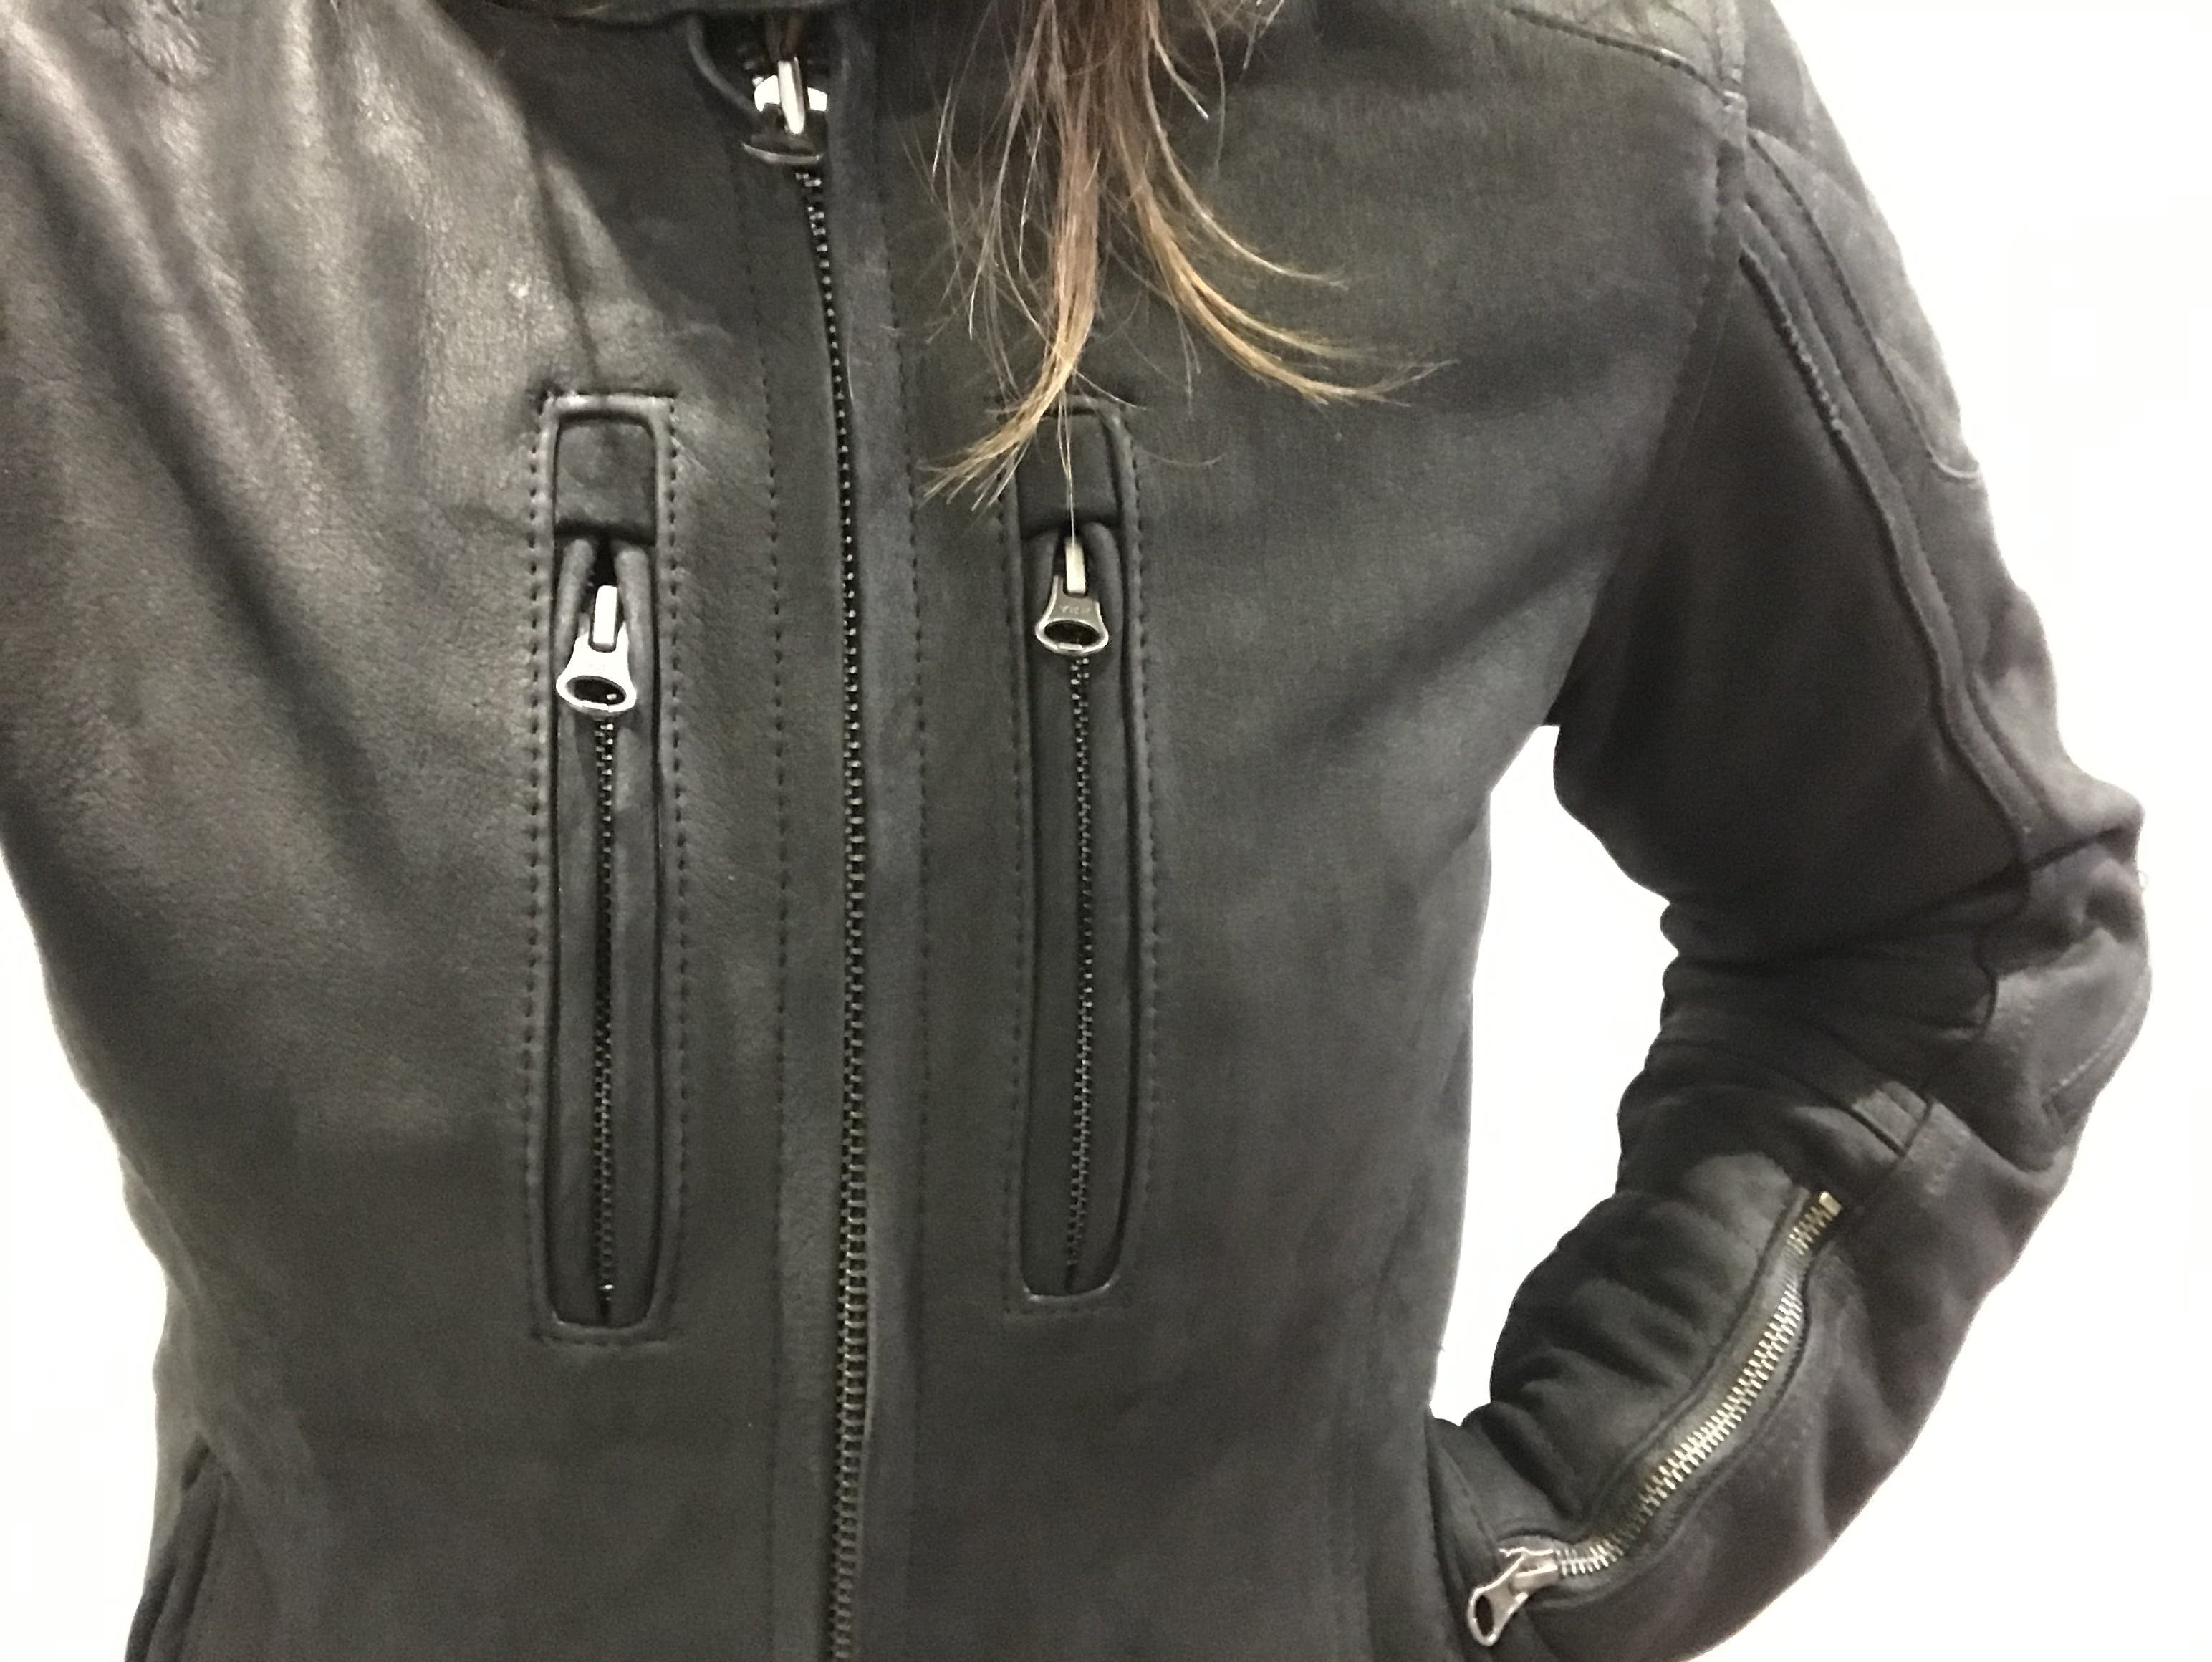 The front chest pockets non the Merlin Mia jacket